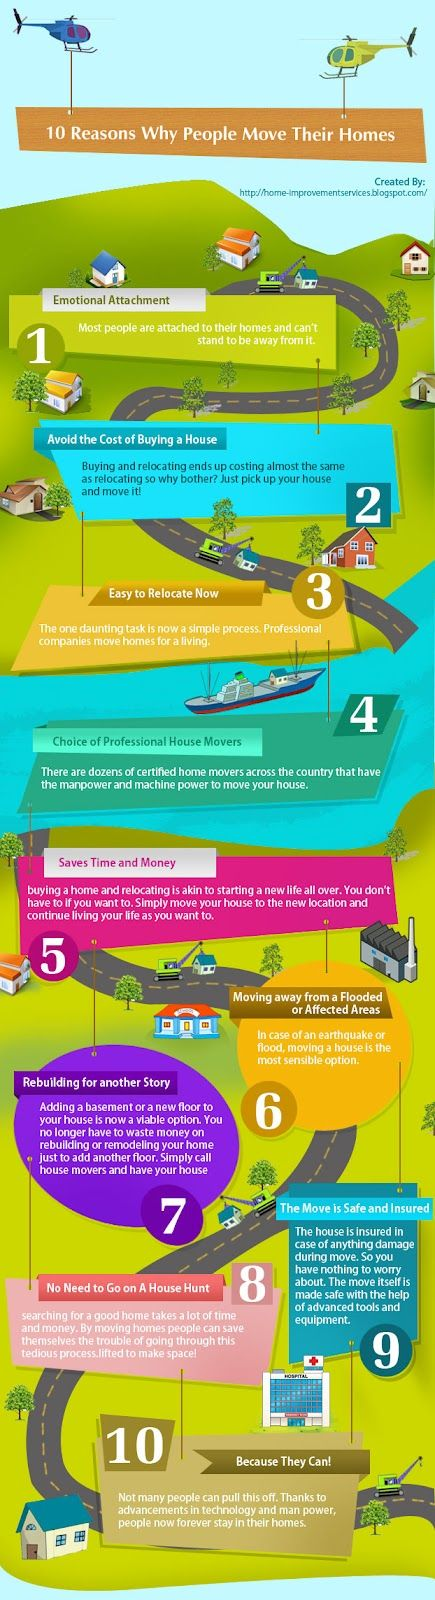 10 Reasons Why People Move Their Homes